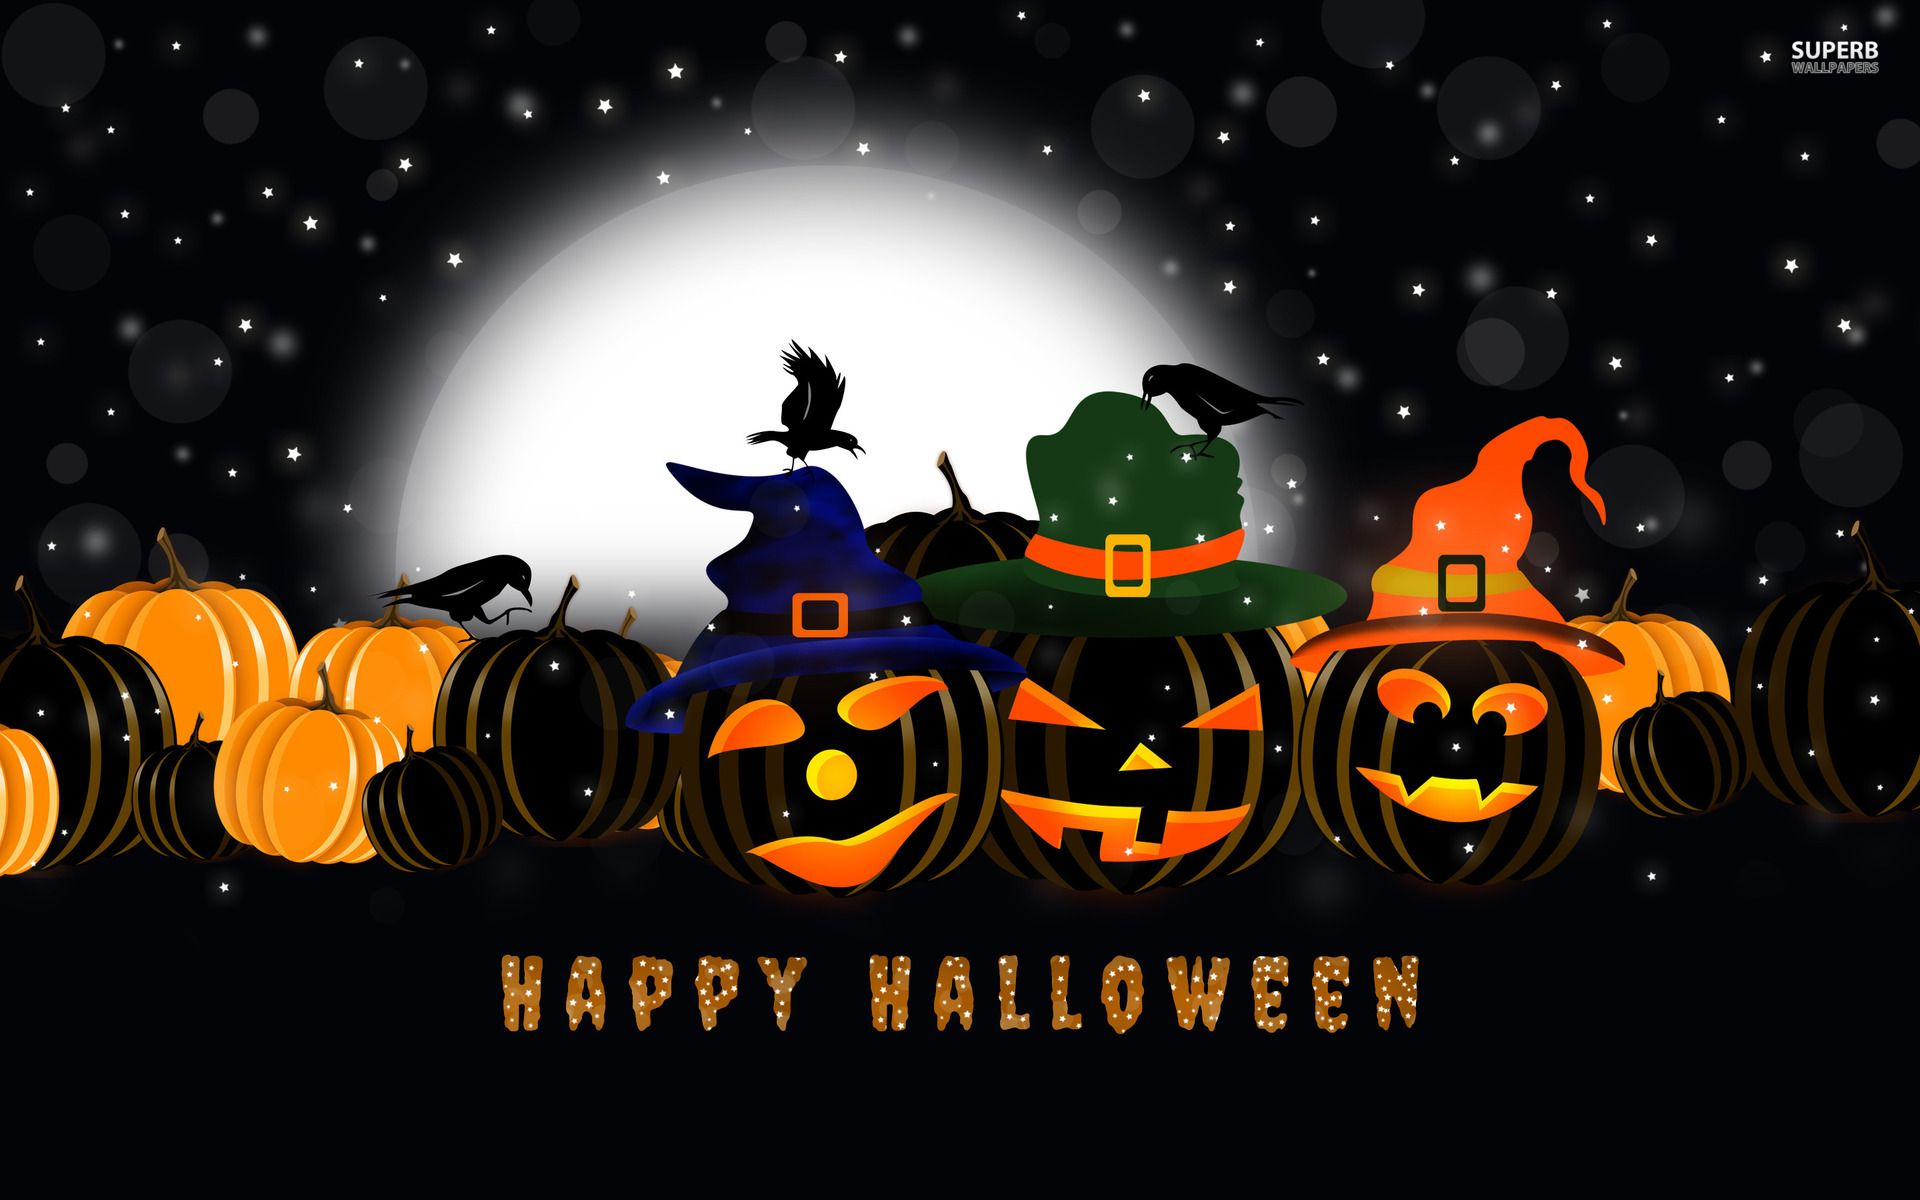 Happy Halloween Wallpaper My stuffs Happy halloween 1920x1200